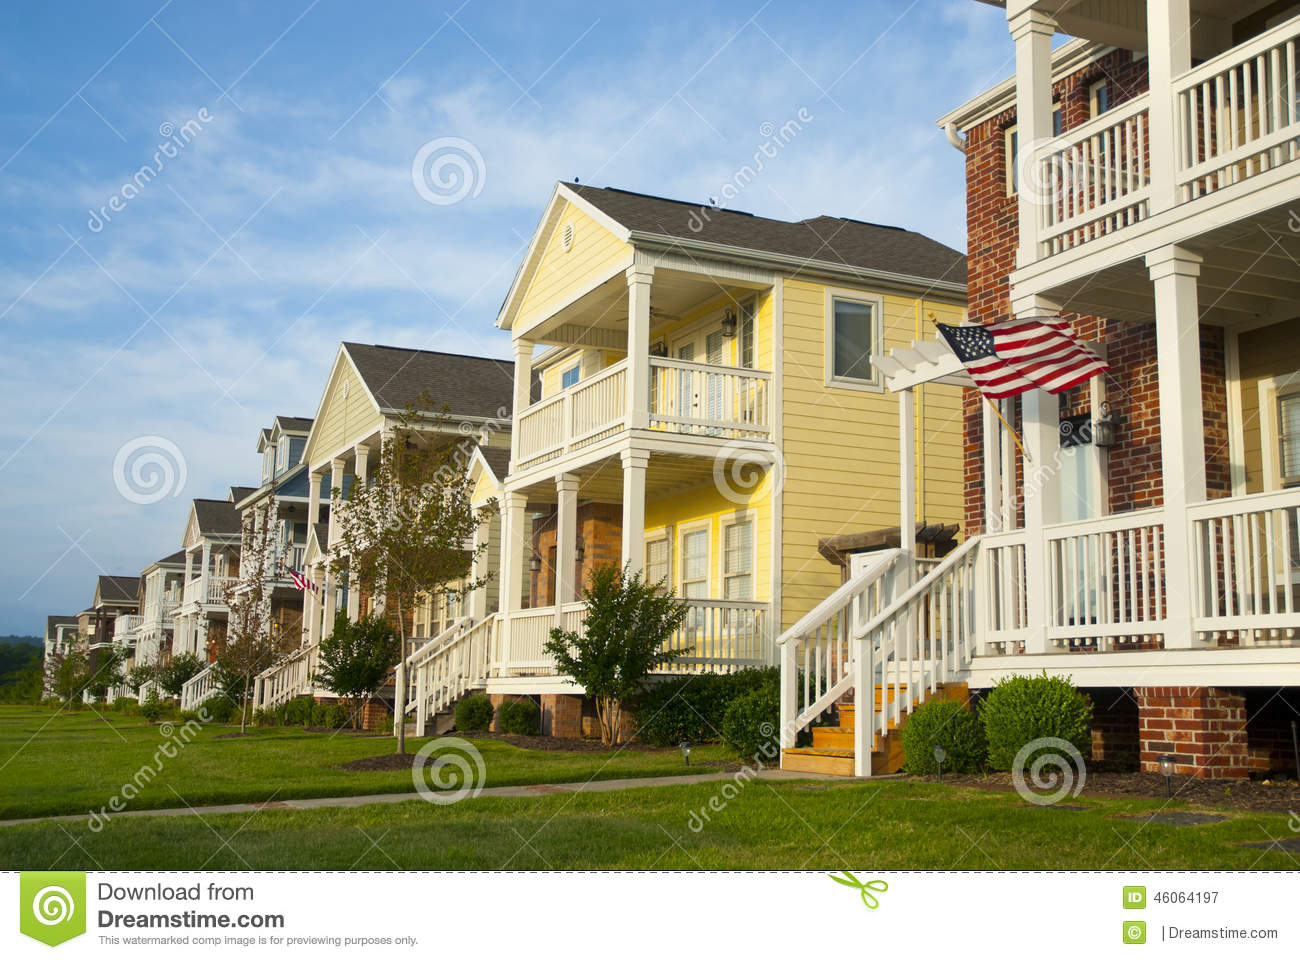 Sensational Row Of Houses In A Mid America Suburb Stock Photo Image 46064197 Largest Home Design Picture Inspirations Pitcheantrous